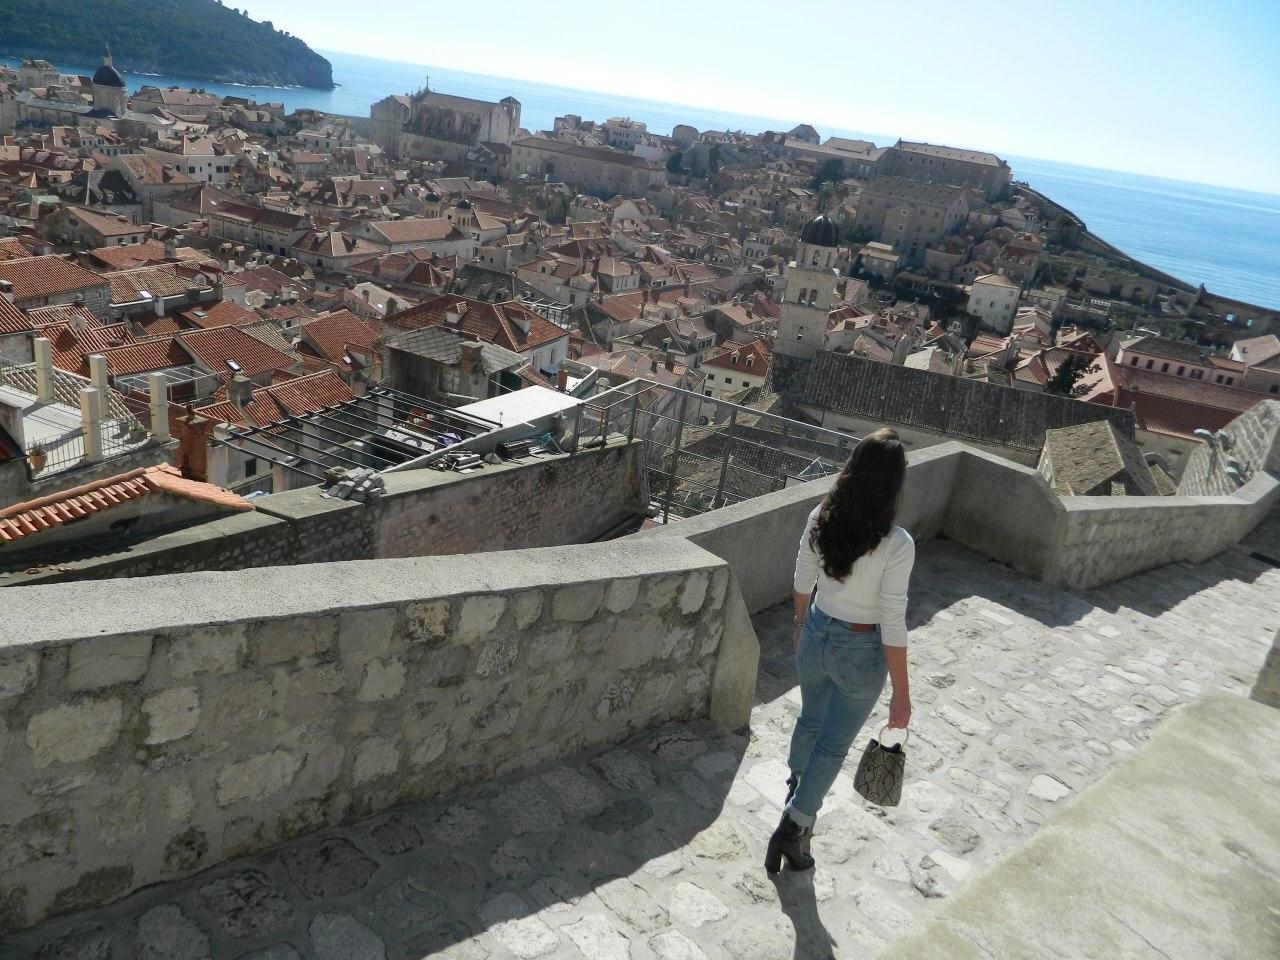 5 spots for a postcard photo in Dubrovnik